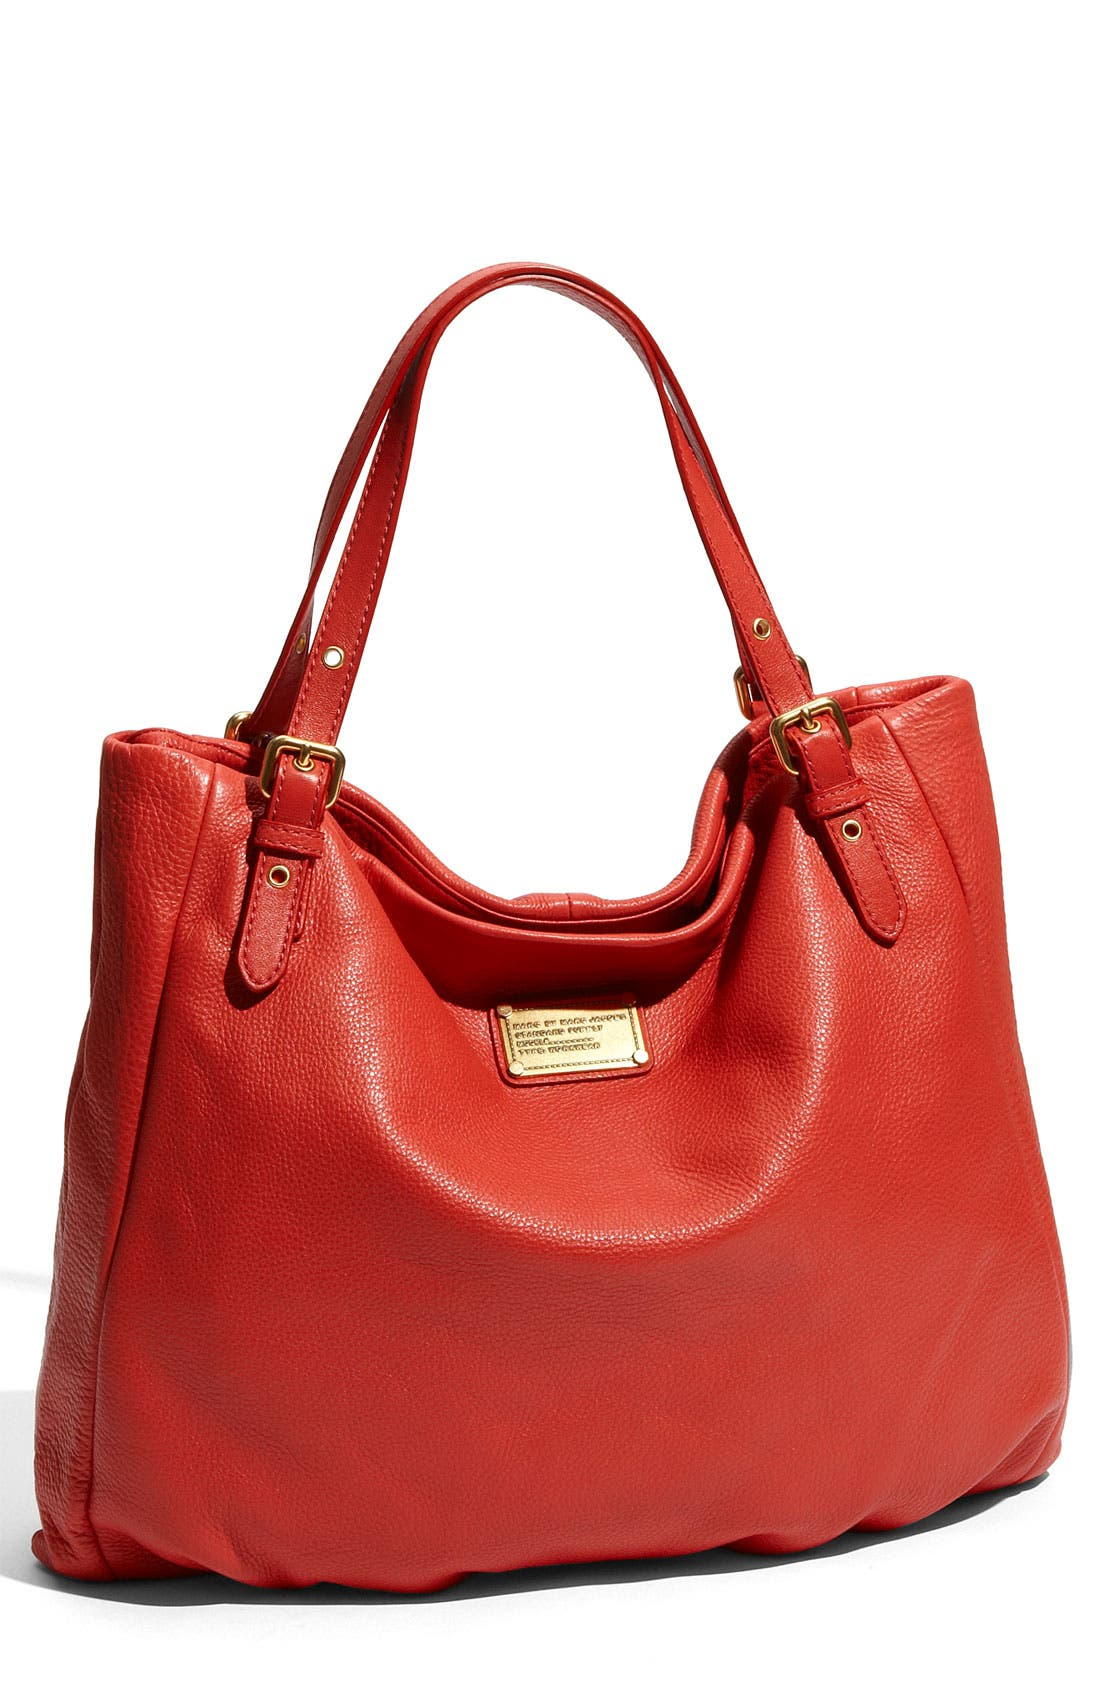 MARC BY MARC JACOBS 'Classic Q - Shopgirl' Leather Tote,                             Main thumbnail 6, color,